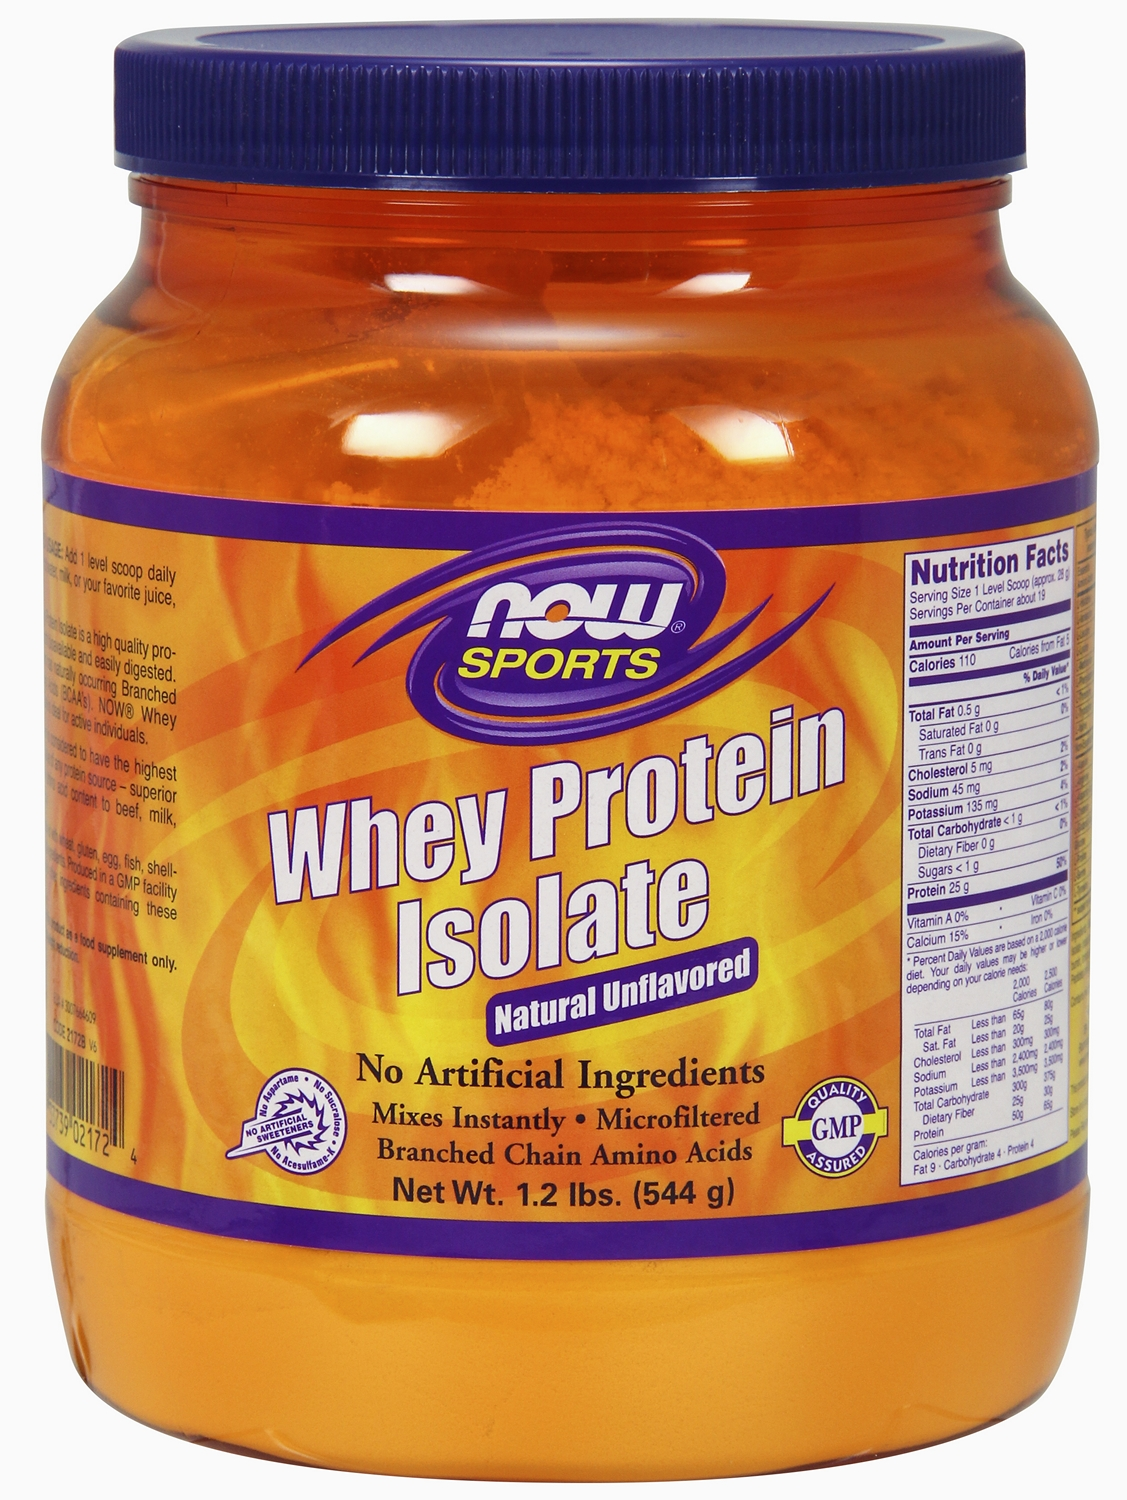 Whey Protein Isolate Unflavored 1.2 lb (544 g) by NOW